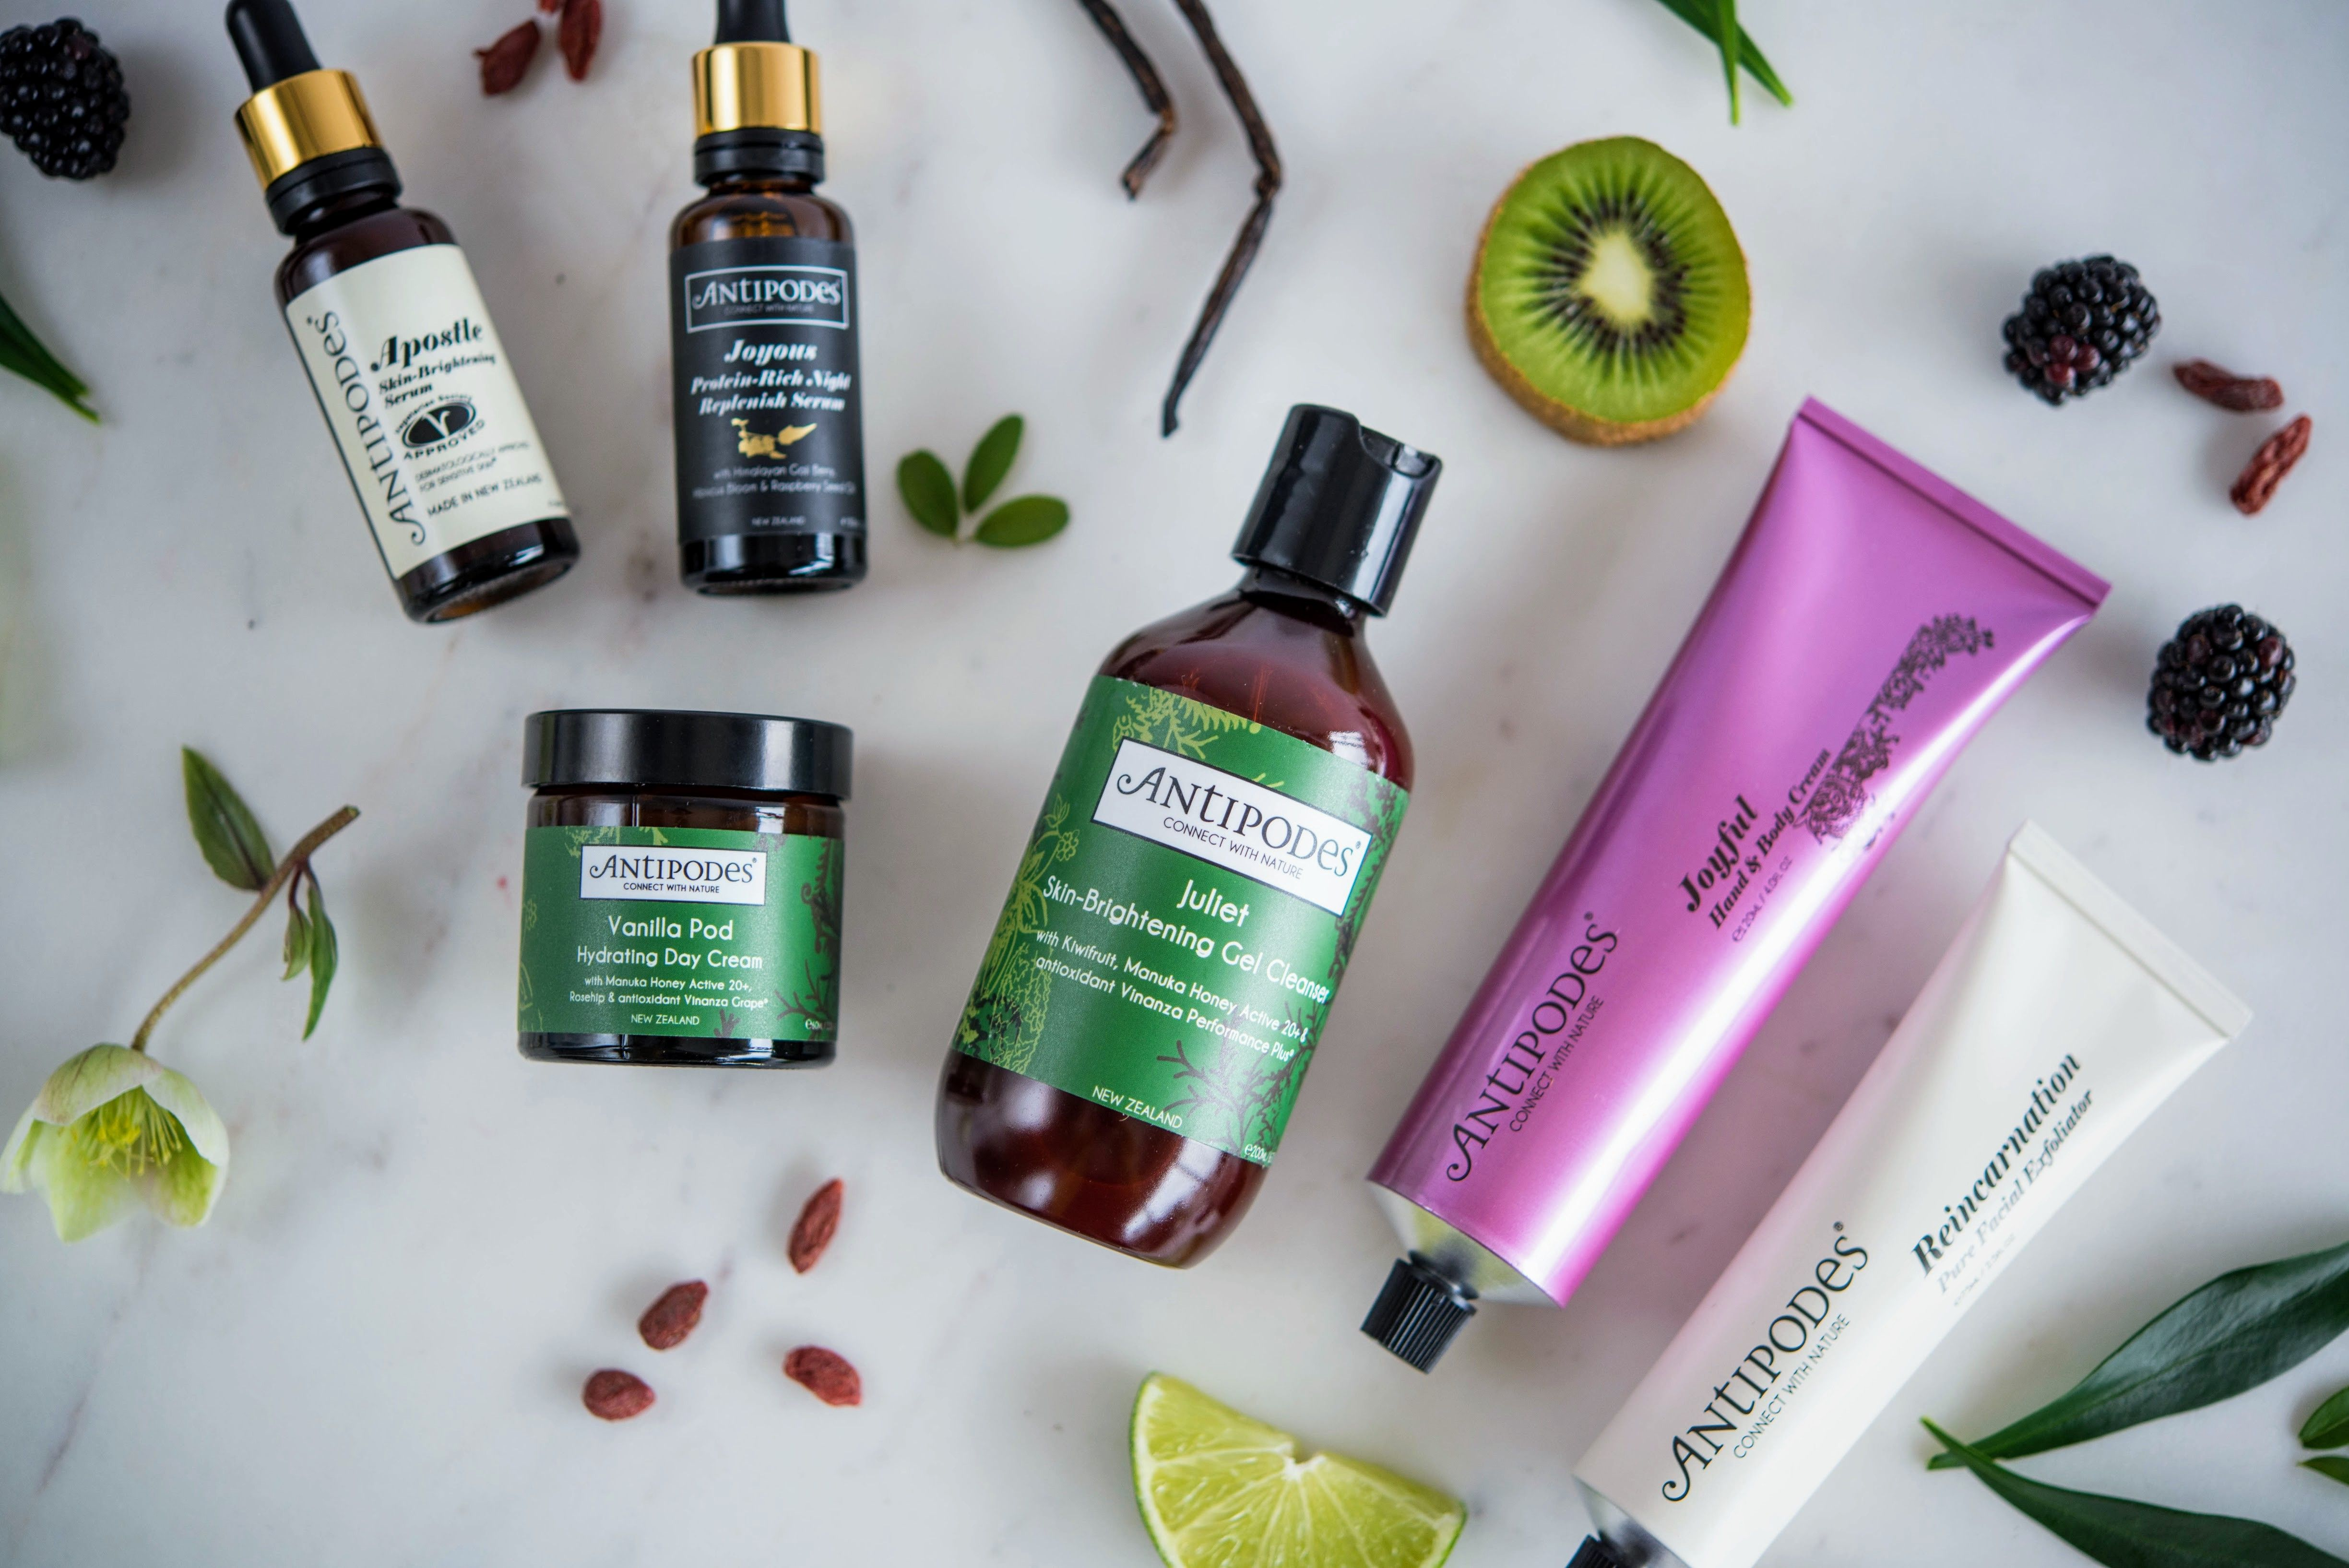 Made in New Zealand, Antipodes is a natural skincare brand